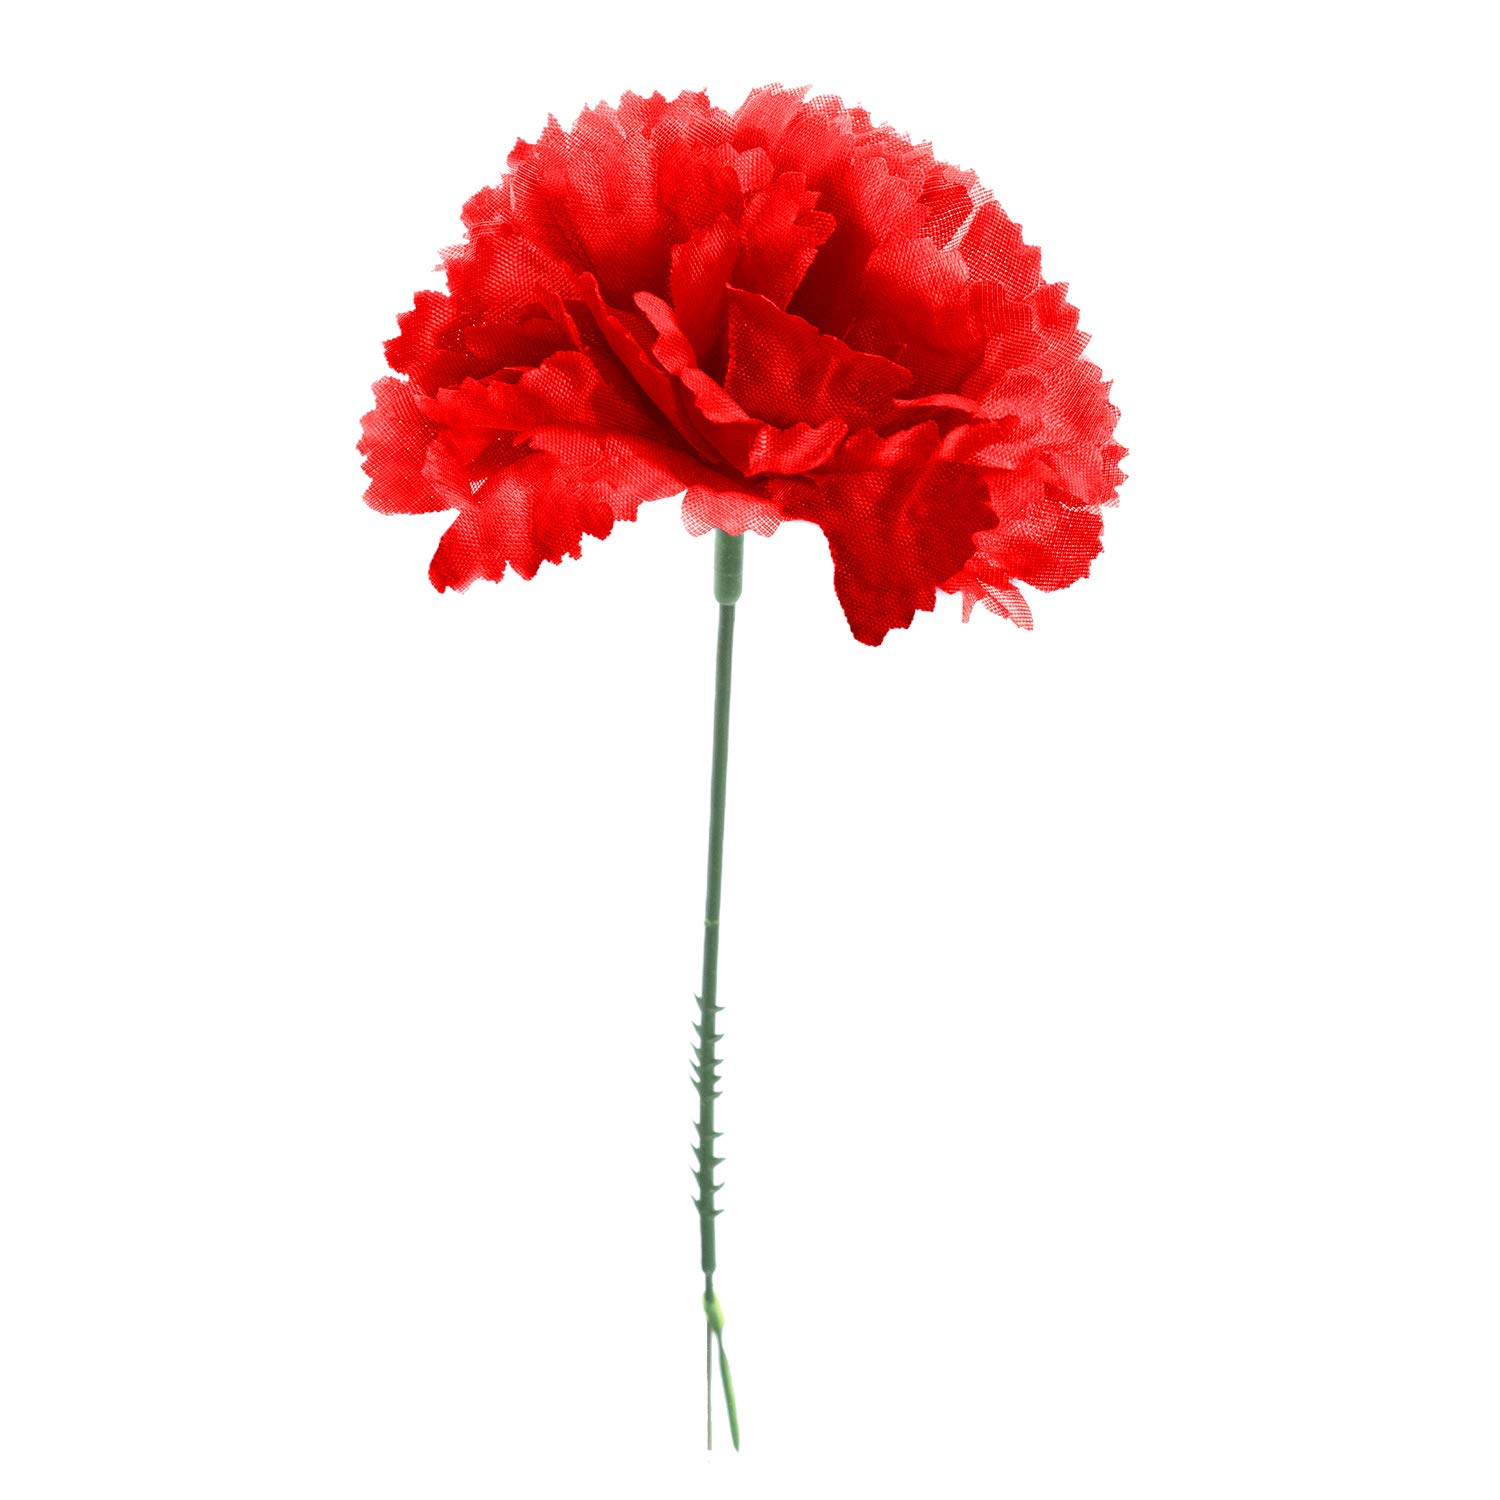 Royal Imports 100 Green Silk Carnations, Artificial Fake Flower Bouquets, Weddings, Cemetery, Crafts & Wreaths, 5